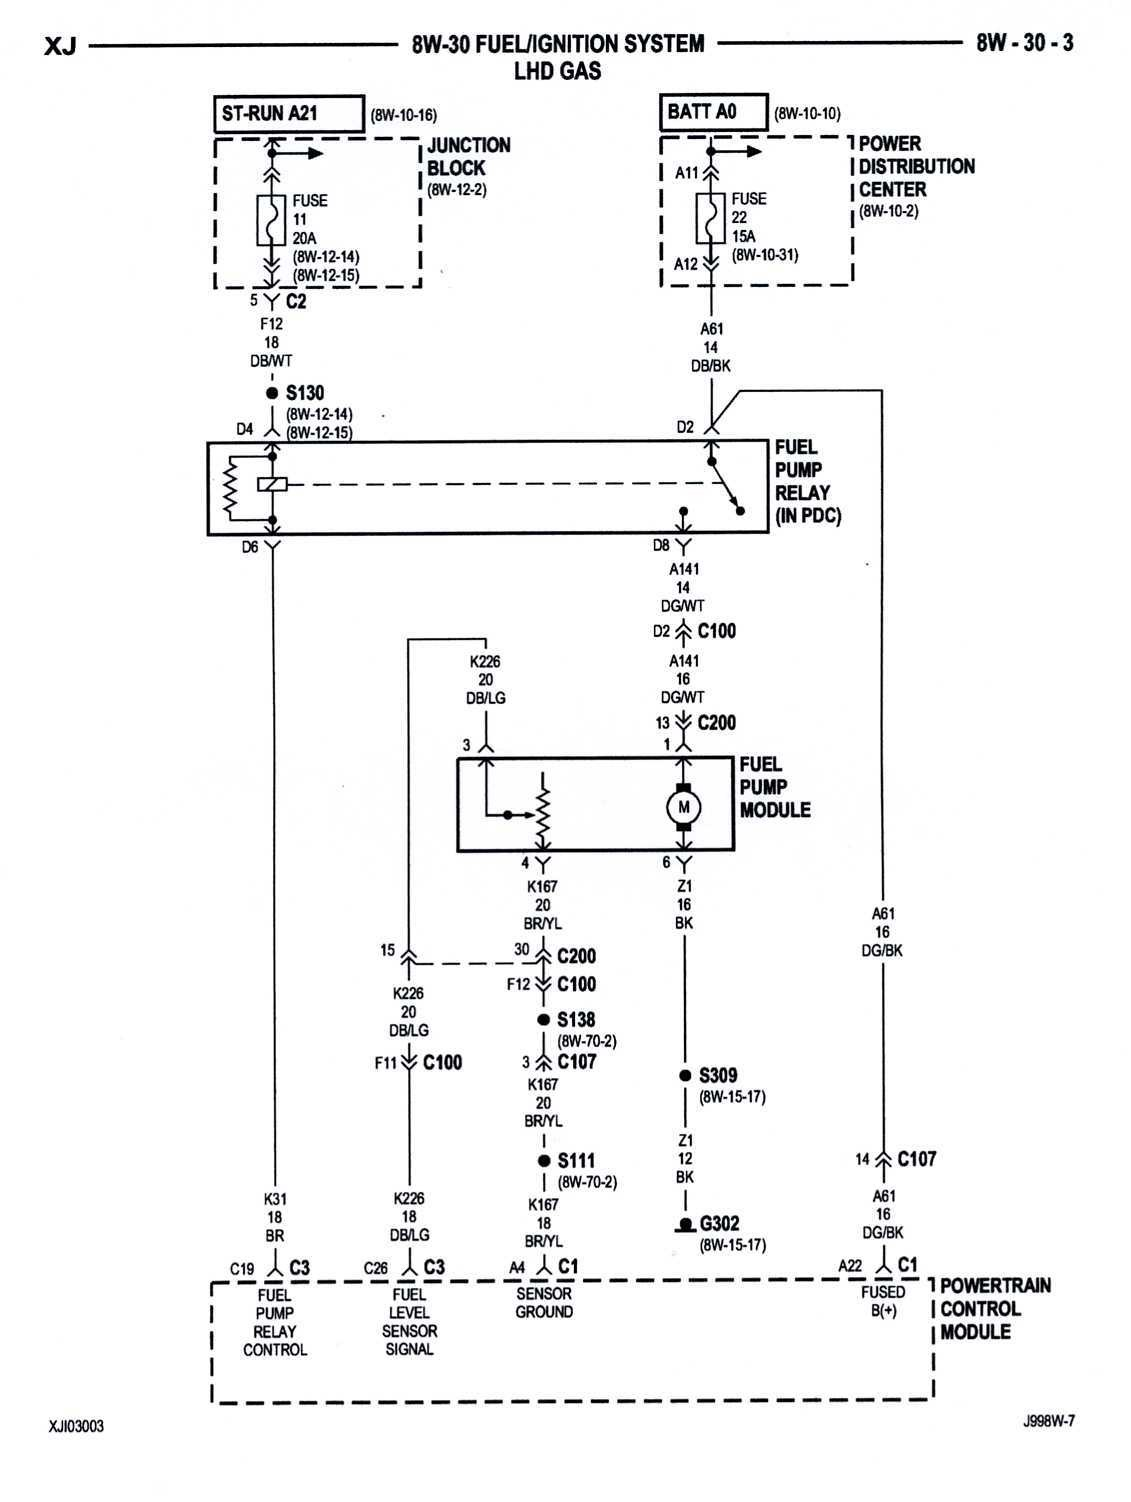 Exelent Equus Fuel Gauge Wiring Diagram Crest - Electrical Diagram ...